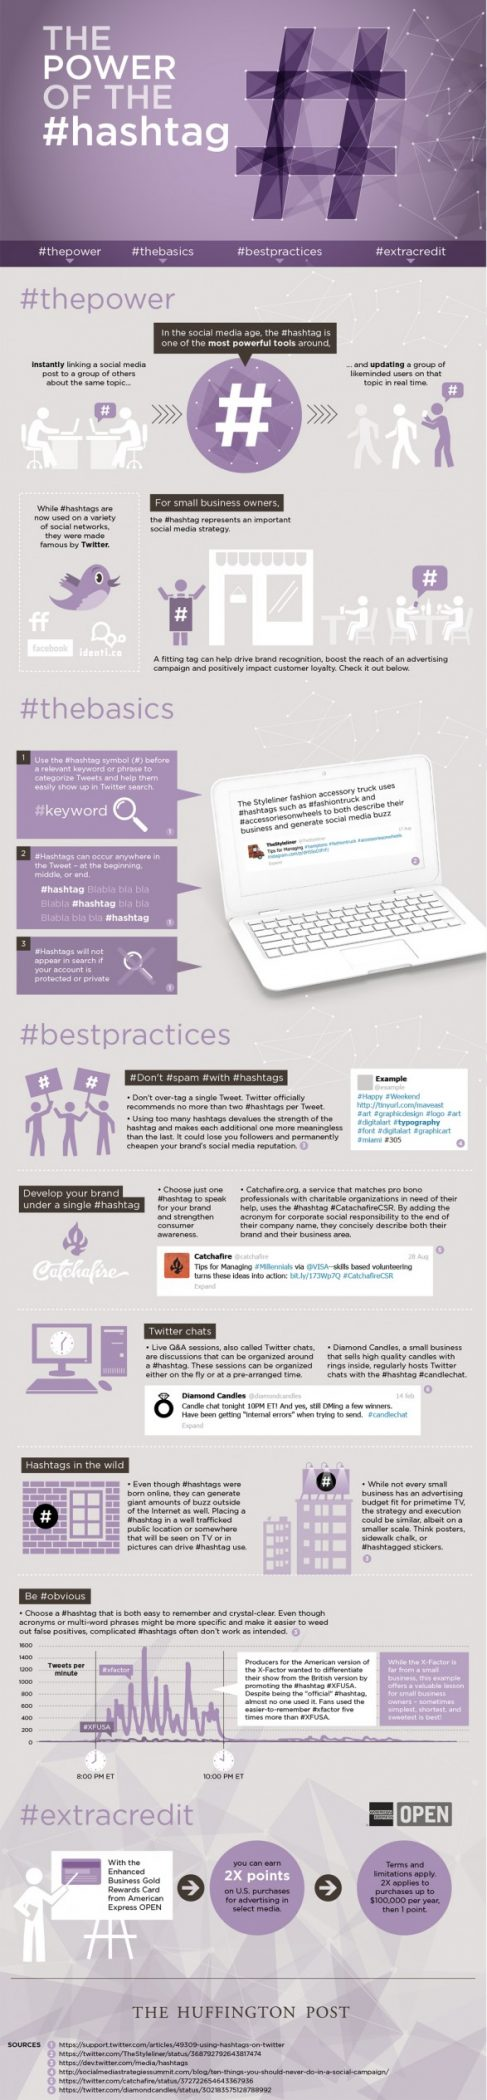 Infographic - The Power of the Hashtag by Huffington Post